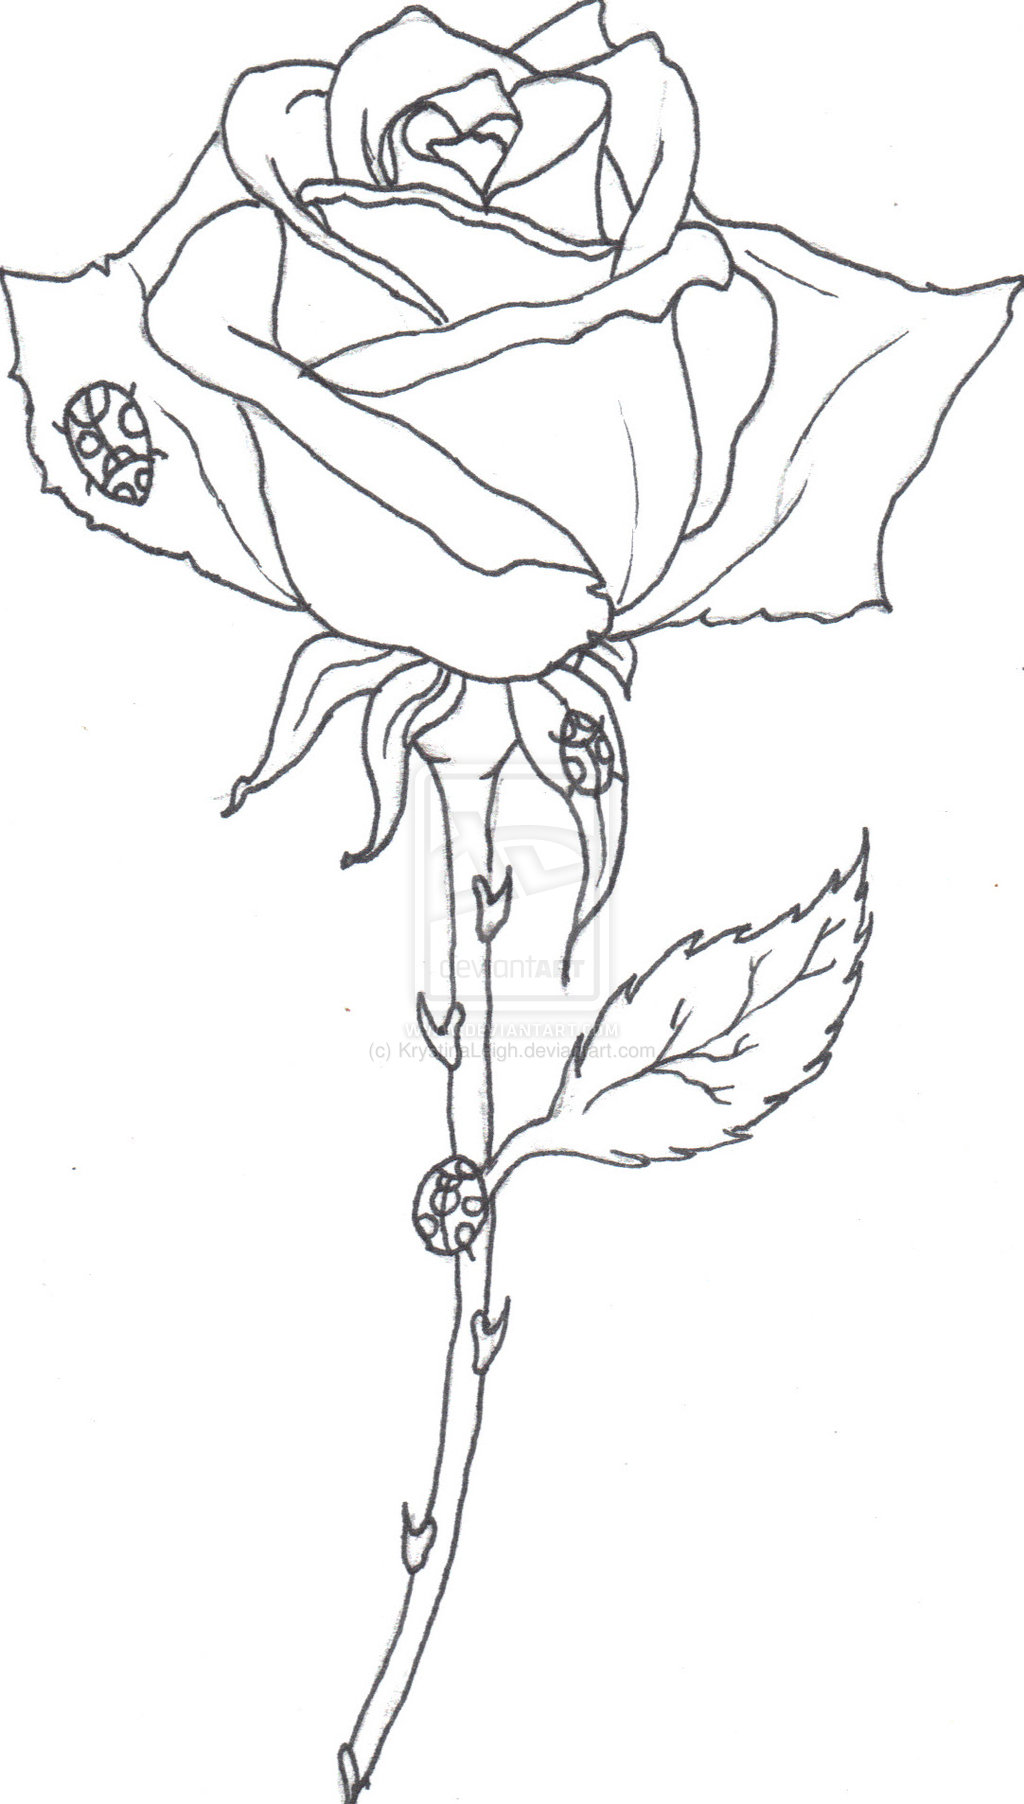 Drawn rose stem outline Images drawings  Images Line